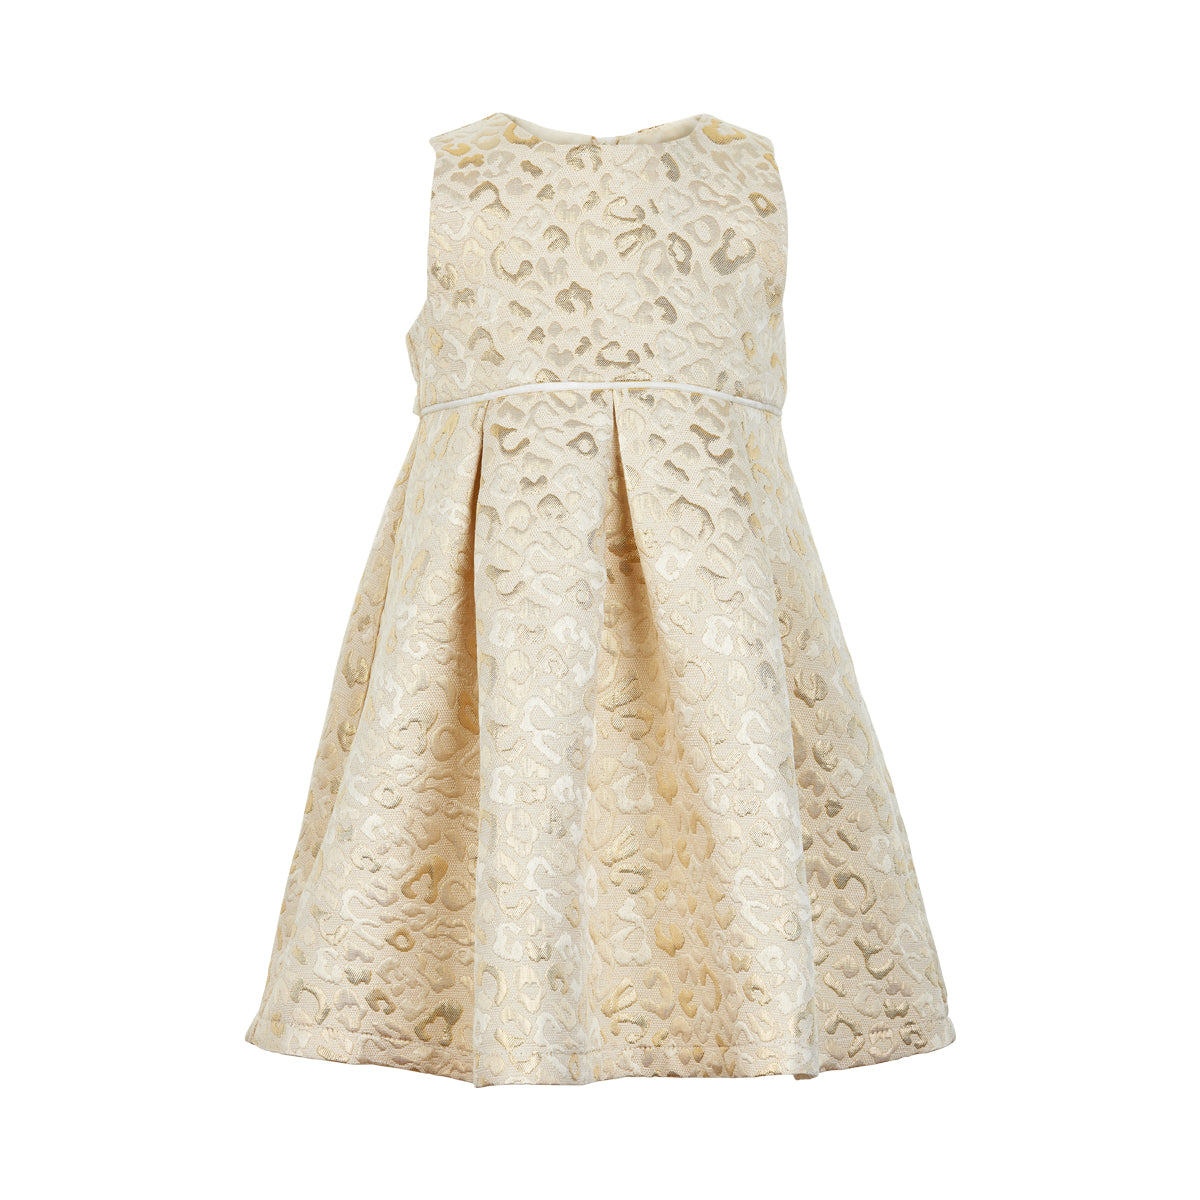 Creamie - Dress Brocade Leo (840068) - Buttercream